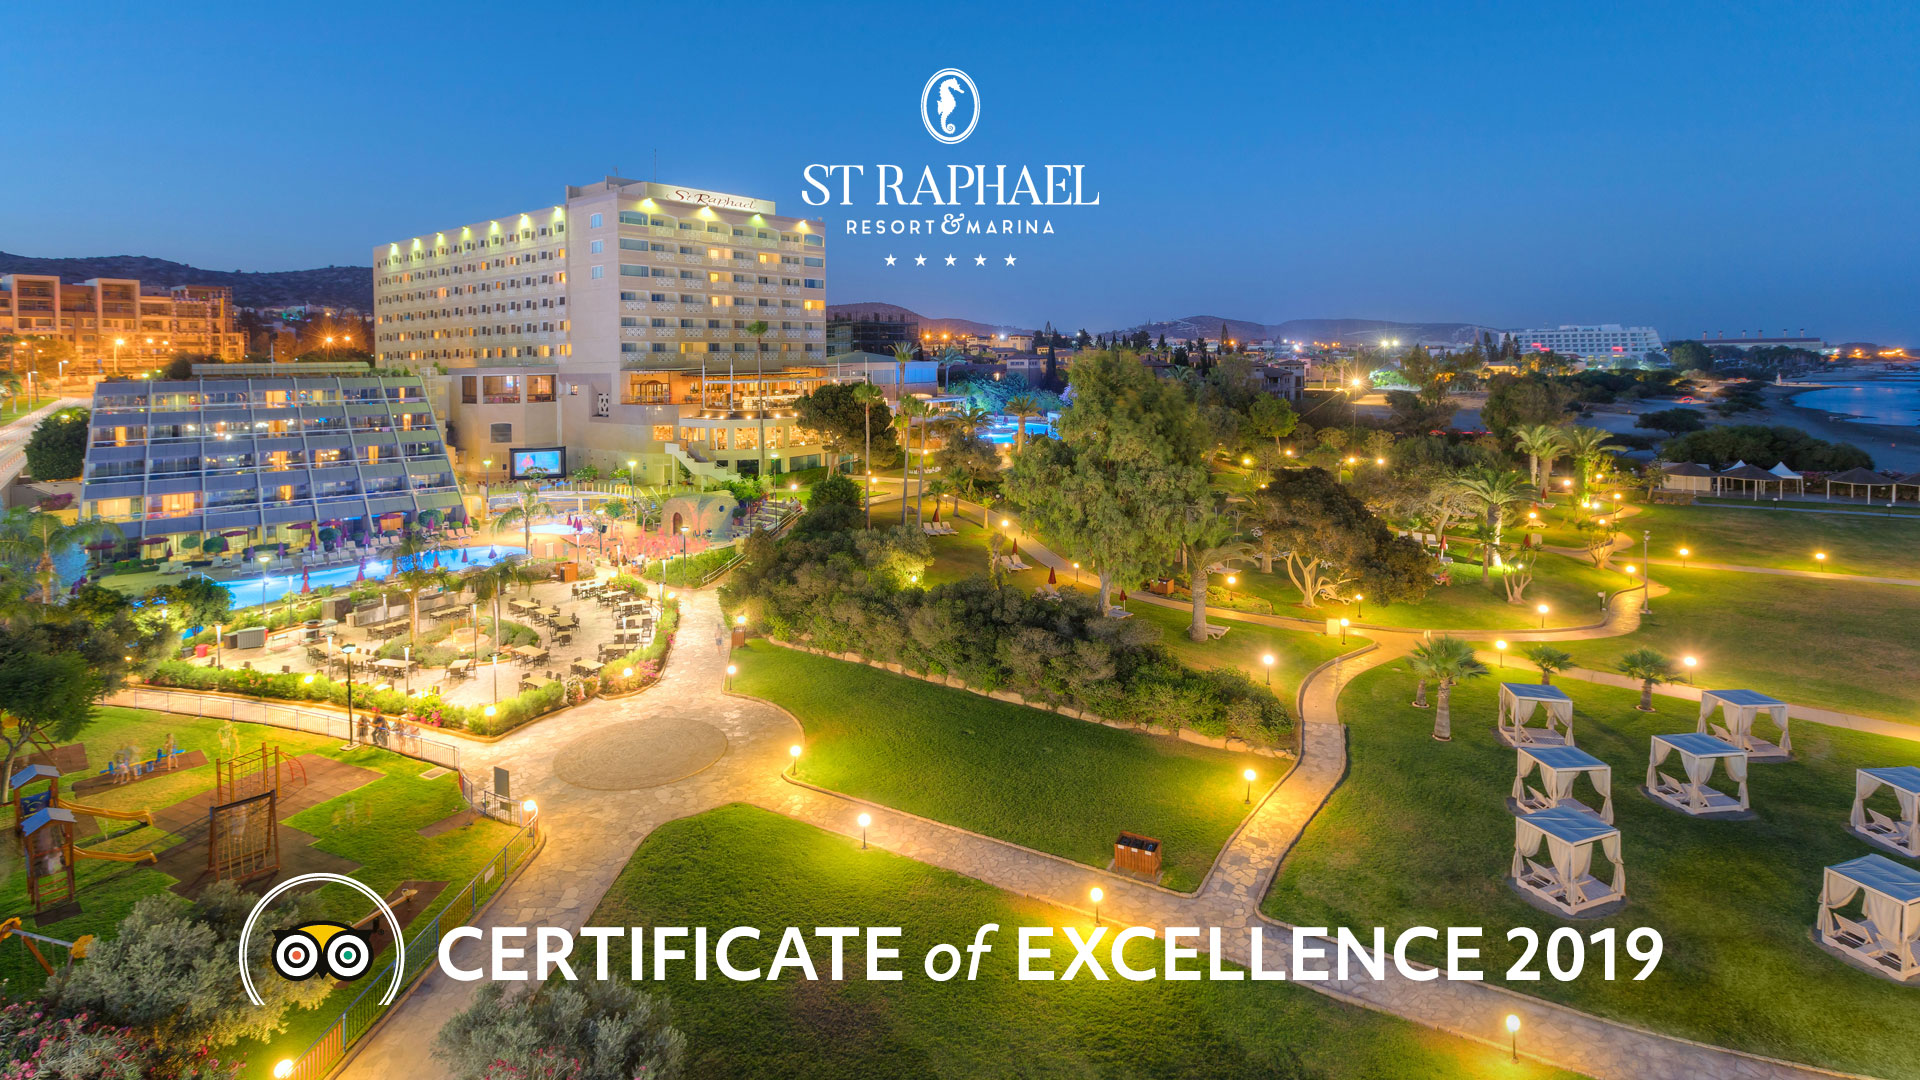 Announcing our TripAdvisor Certificate of Excellence 2019